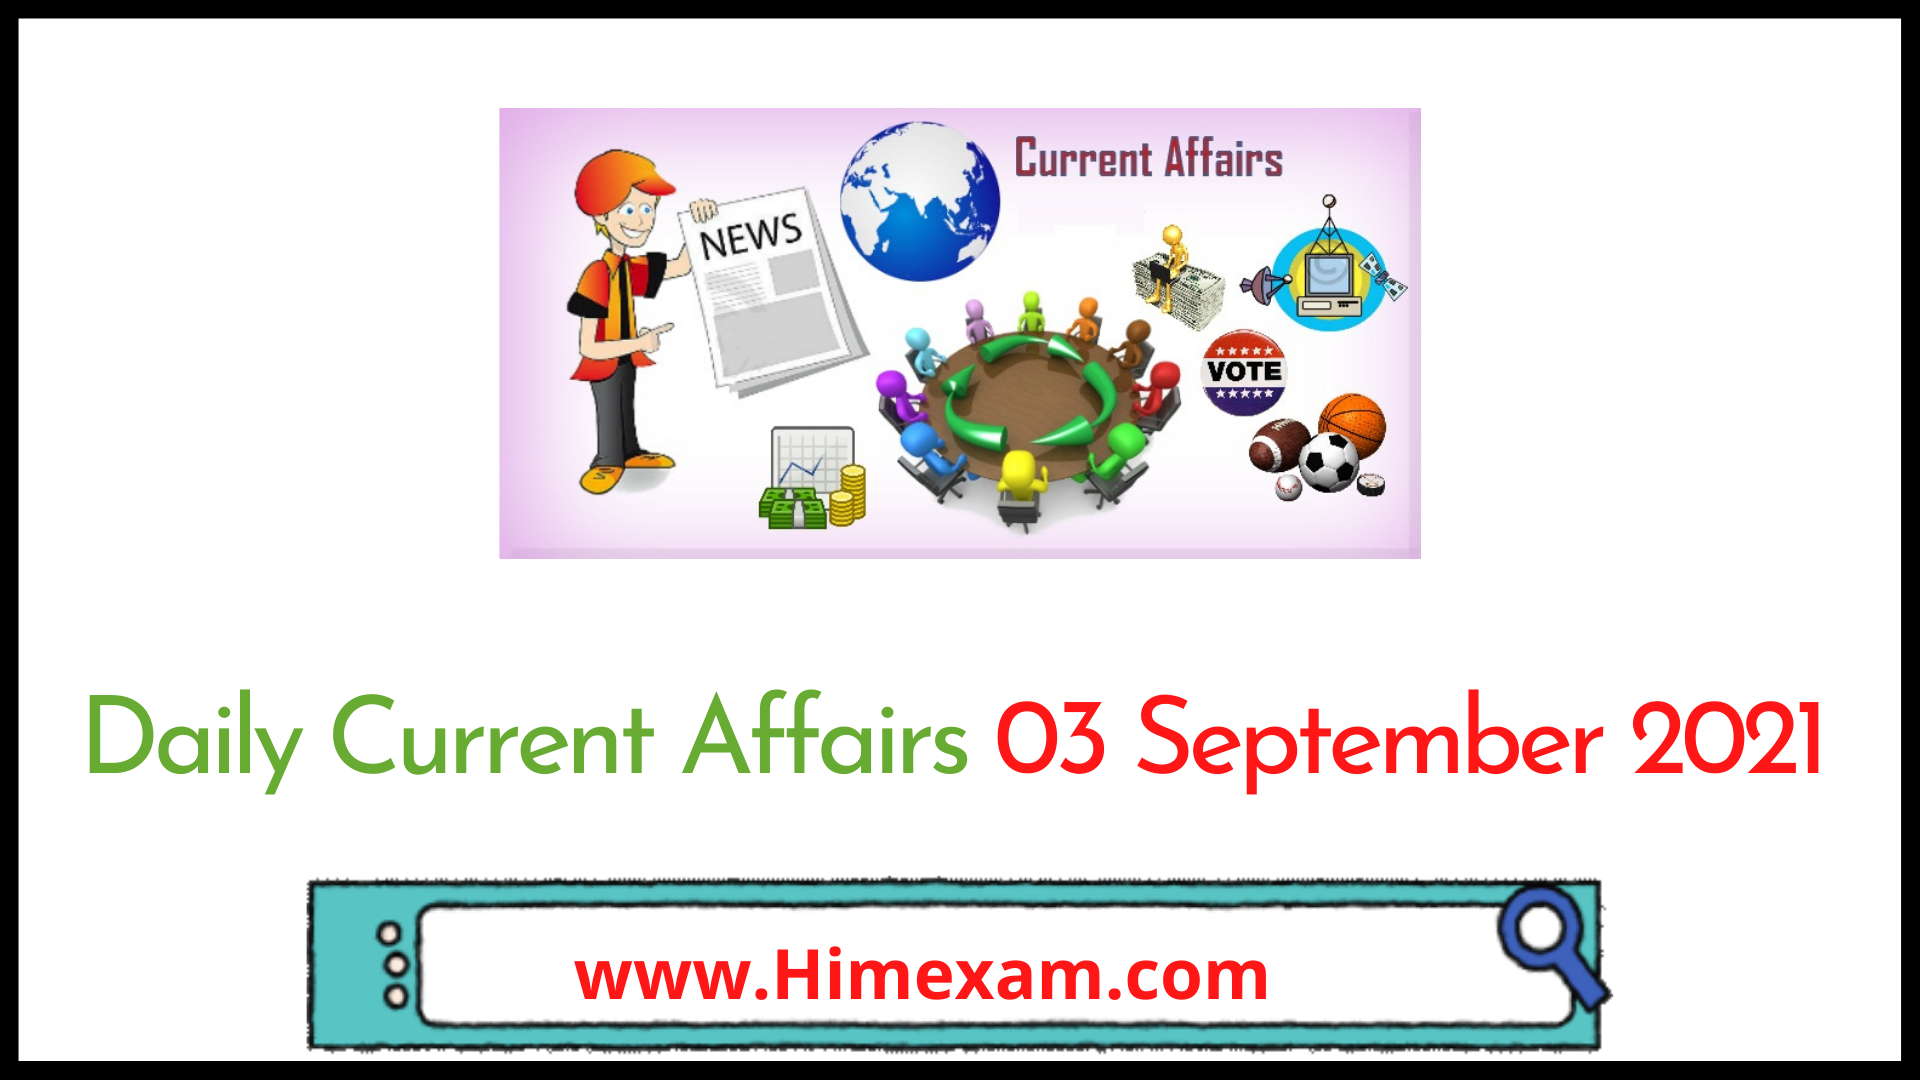 Daily Current Affairs 03 September 2021